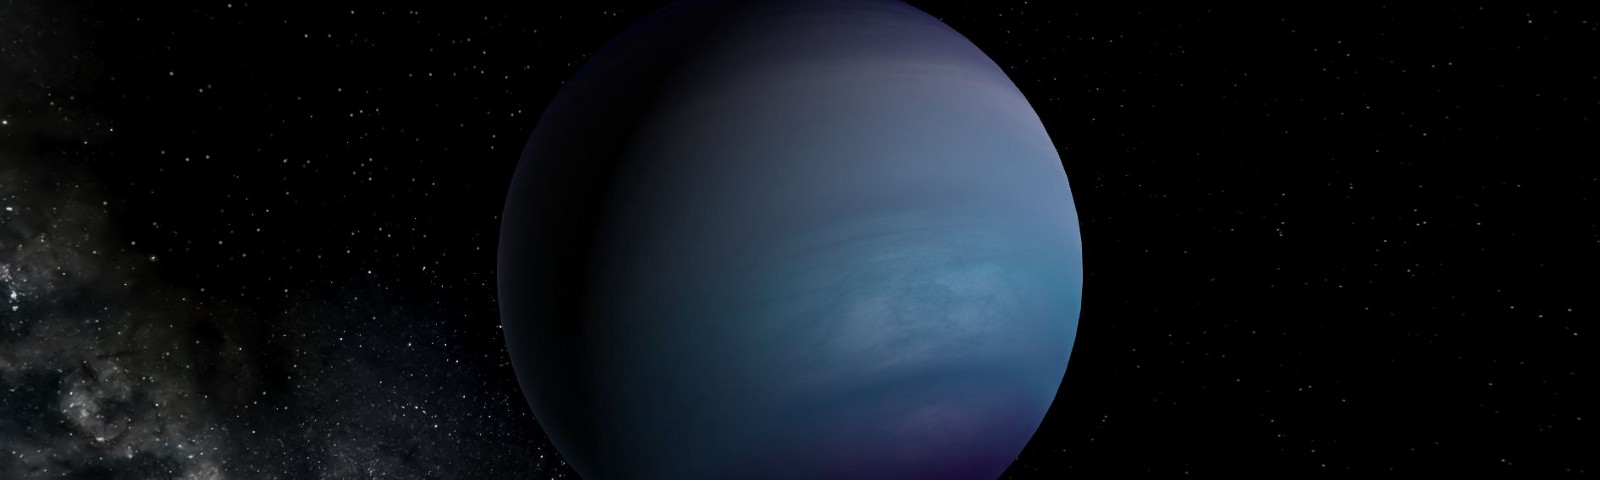 Planet 9 is depected here as a large, blue, gaseous planet.